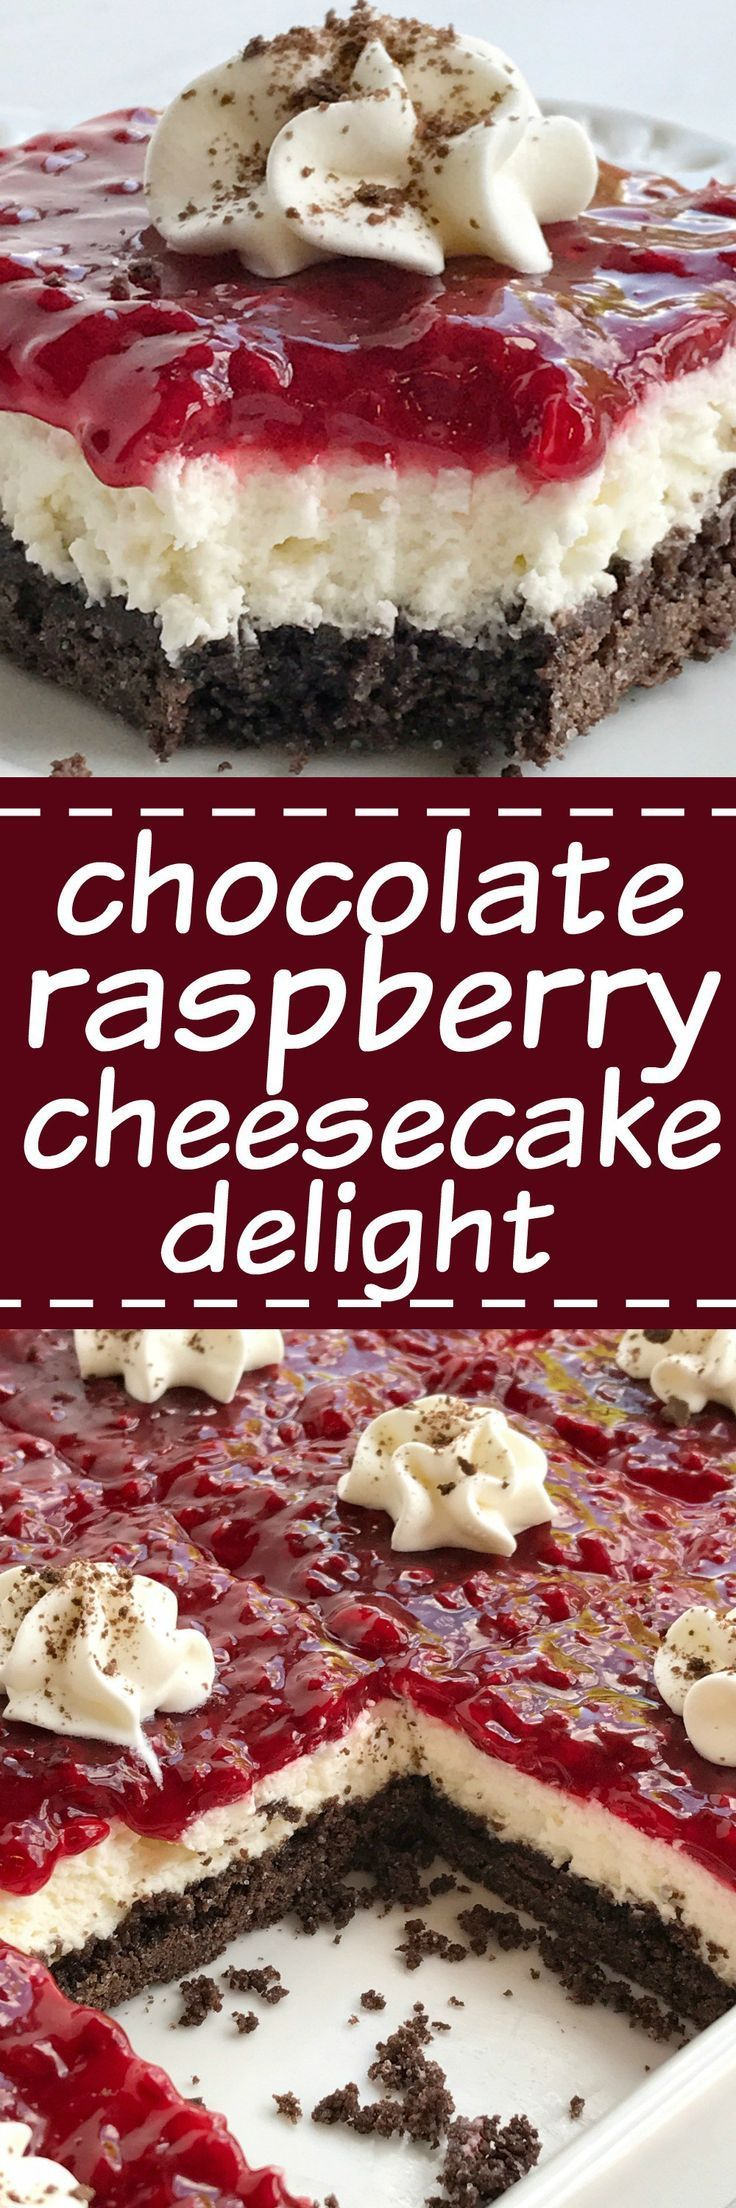 Chocolate raspberry cheesecake delight isan almost no-bake dessert with three delicious layers! A chocolate graham cracker crust, creamy sweet cheesecake middle, and topped with raspberry pie filling.